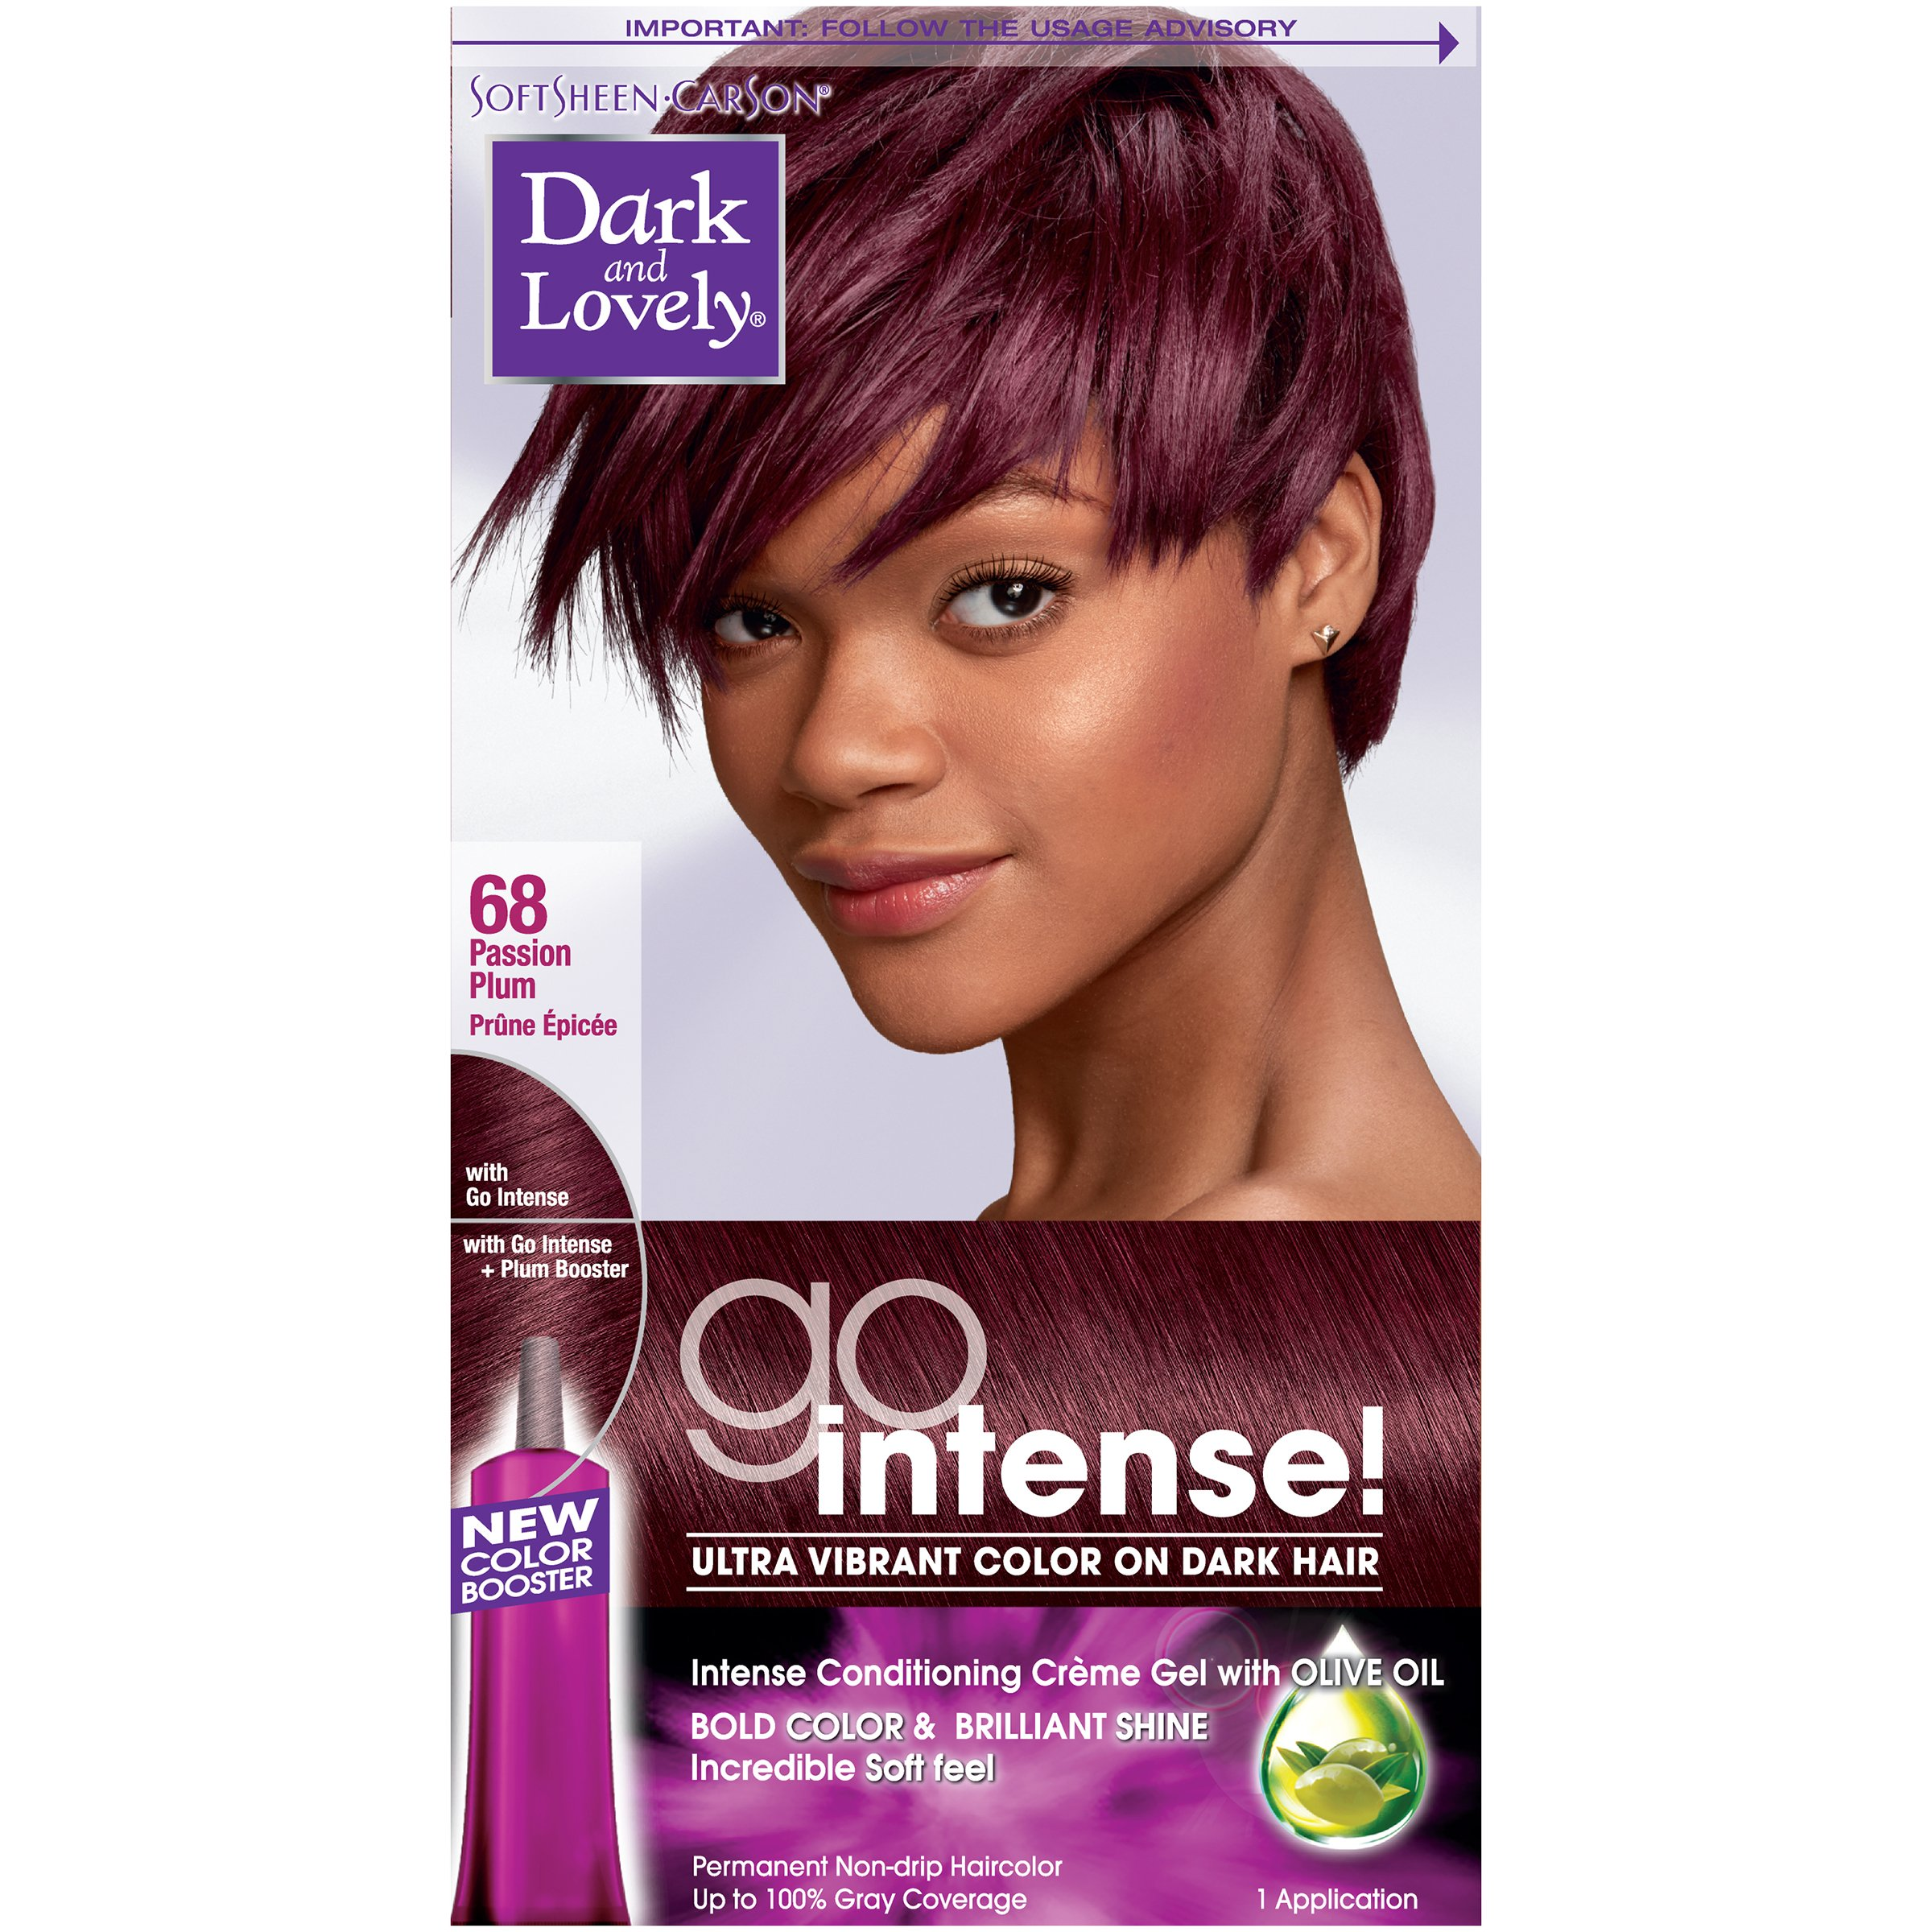 Amazon Softsheen Carson Dark And Lovely Go Intense Ultra